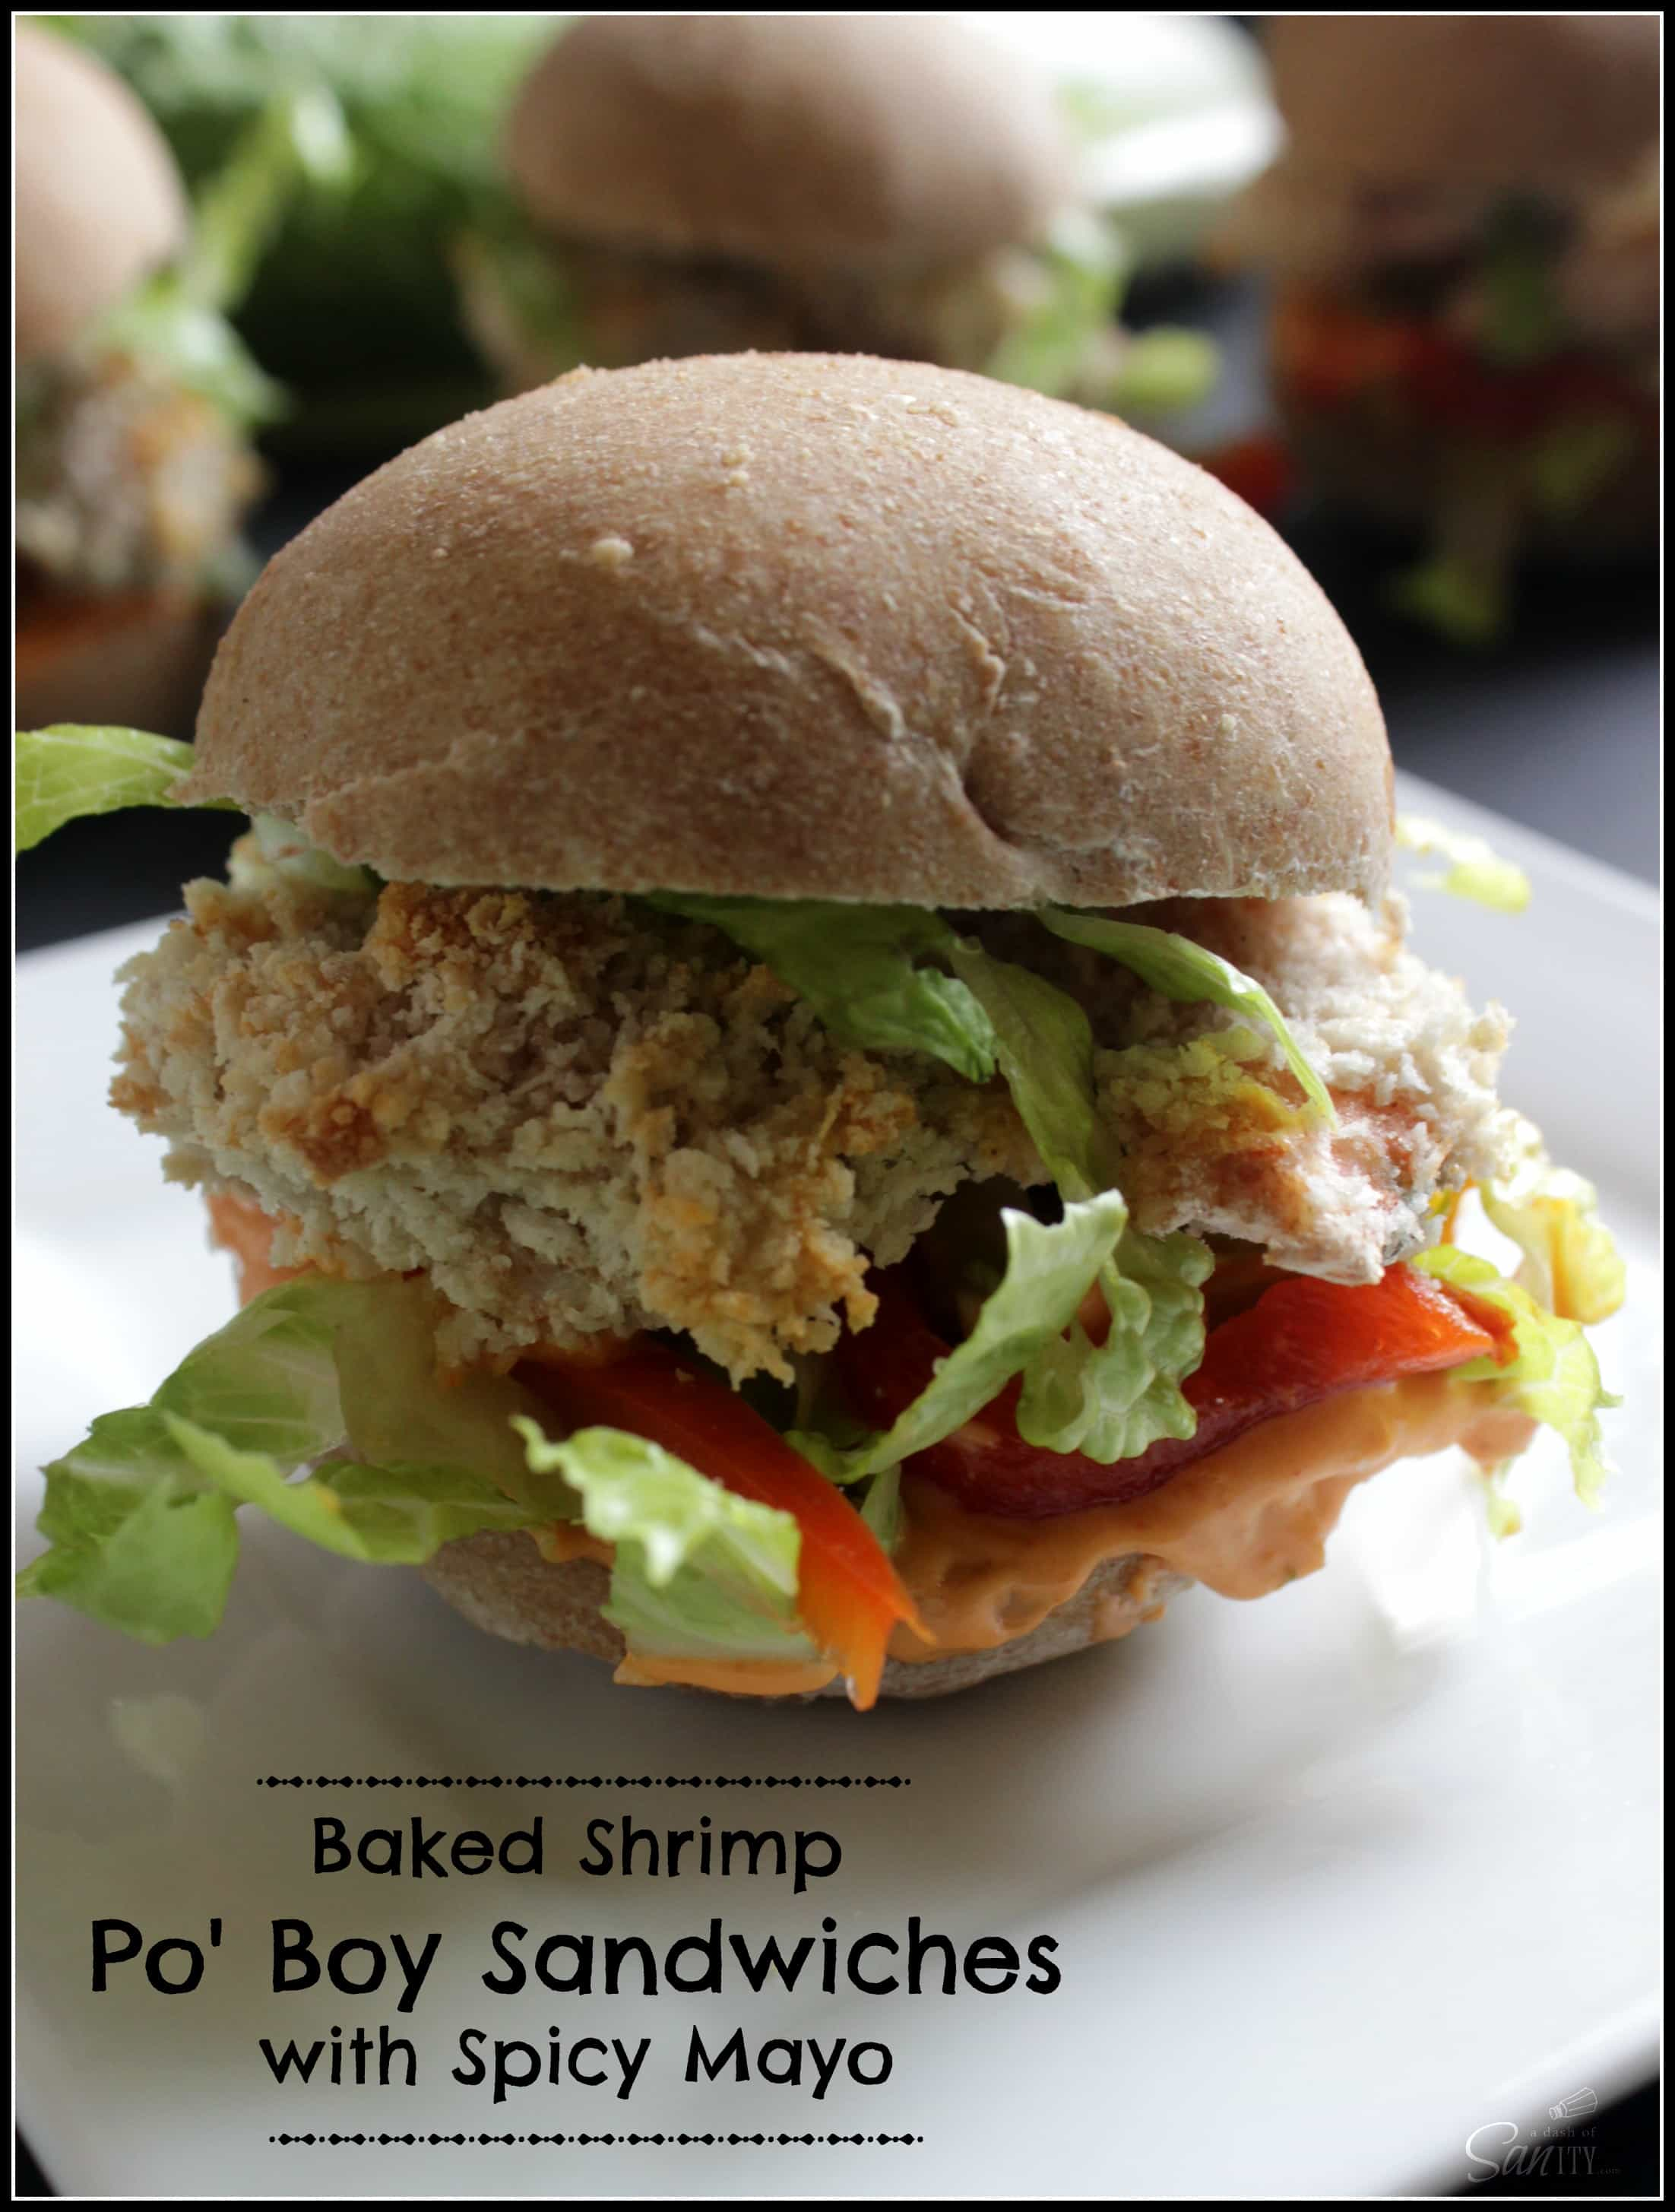 Baked Shrimp Po' Boy Sandwiches with Spicy Mayo is a healthy twist on ...